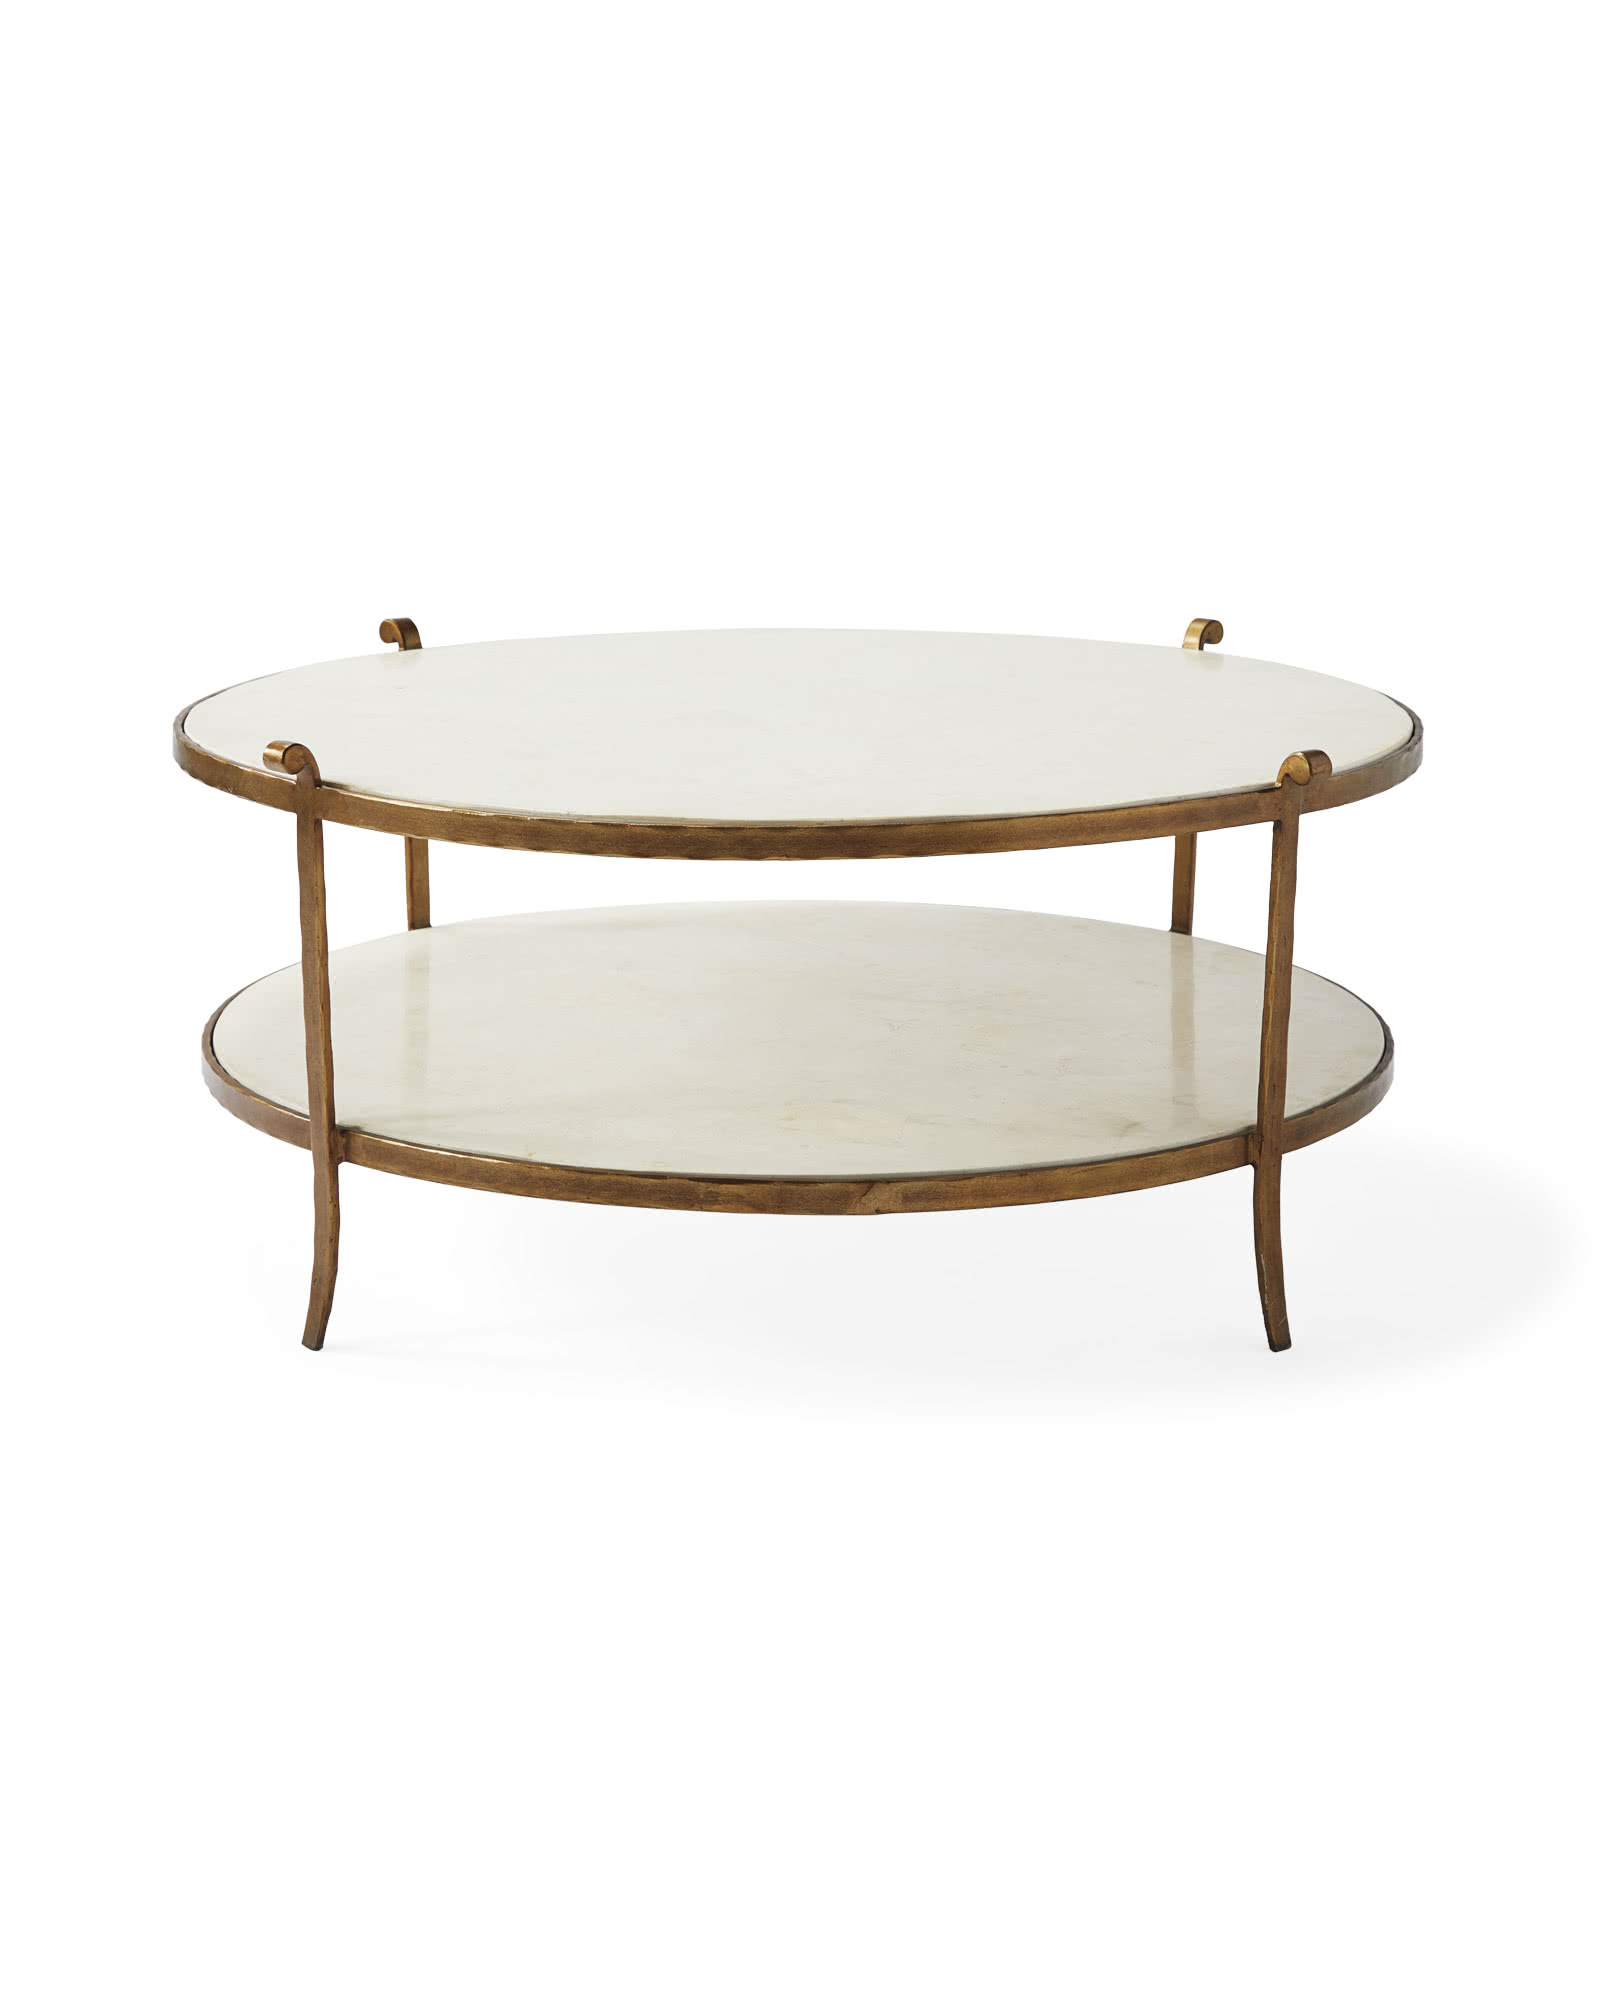 St. Germain Stone Coffee Table,